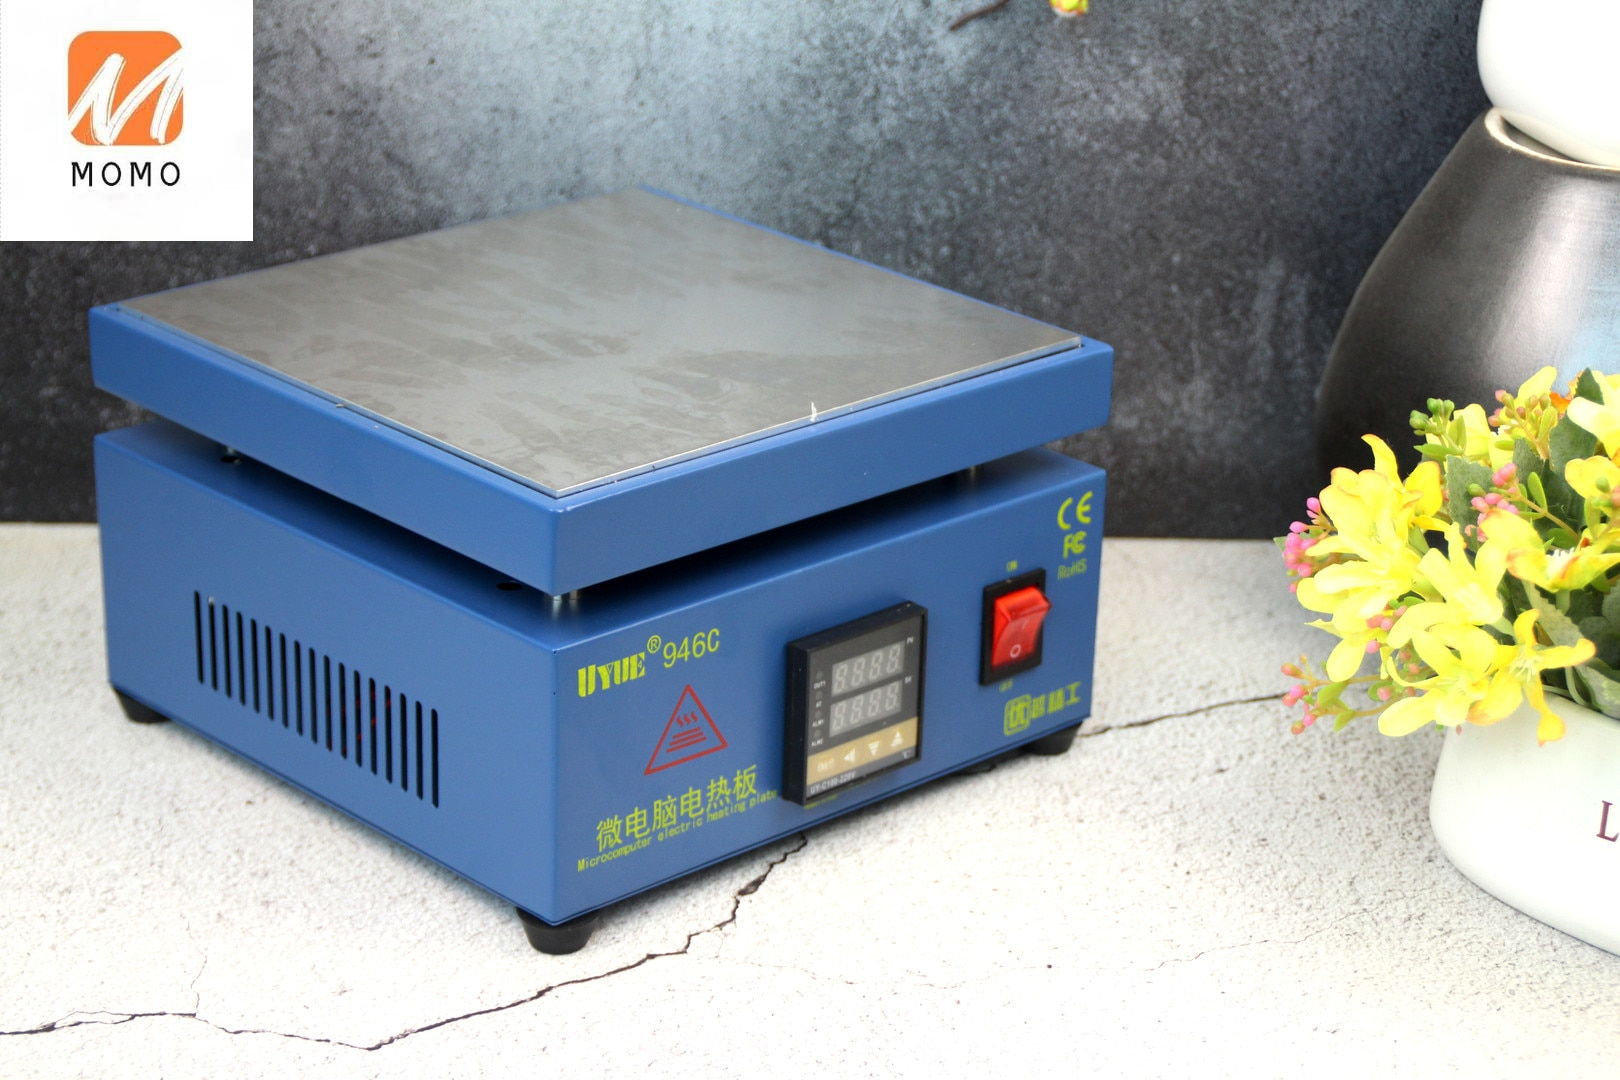 110/220V 600W 946C Electronic Hot Plate Preheat Preheating Station 200x200mm For BGA PCB SMD Heating Led Lamp Desoldering enlarge